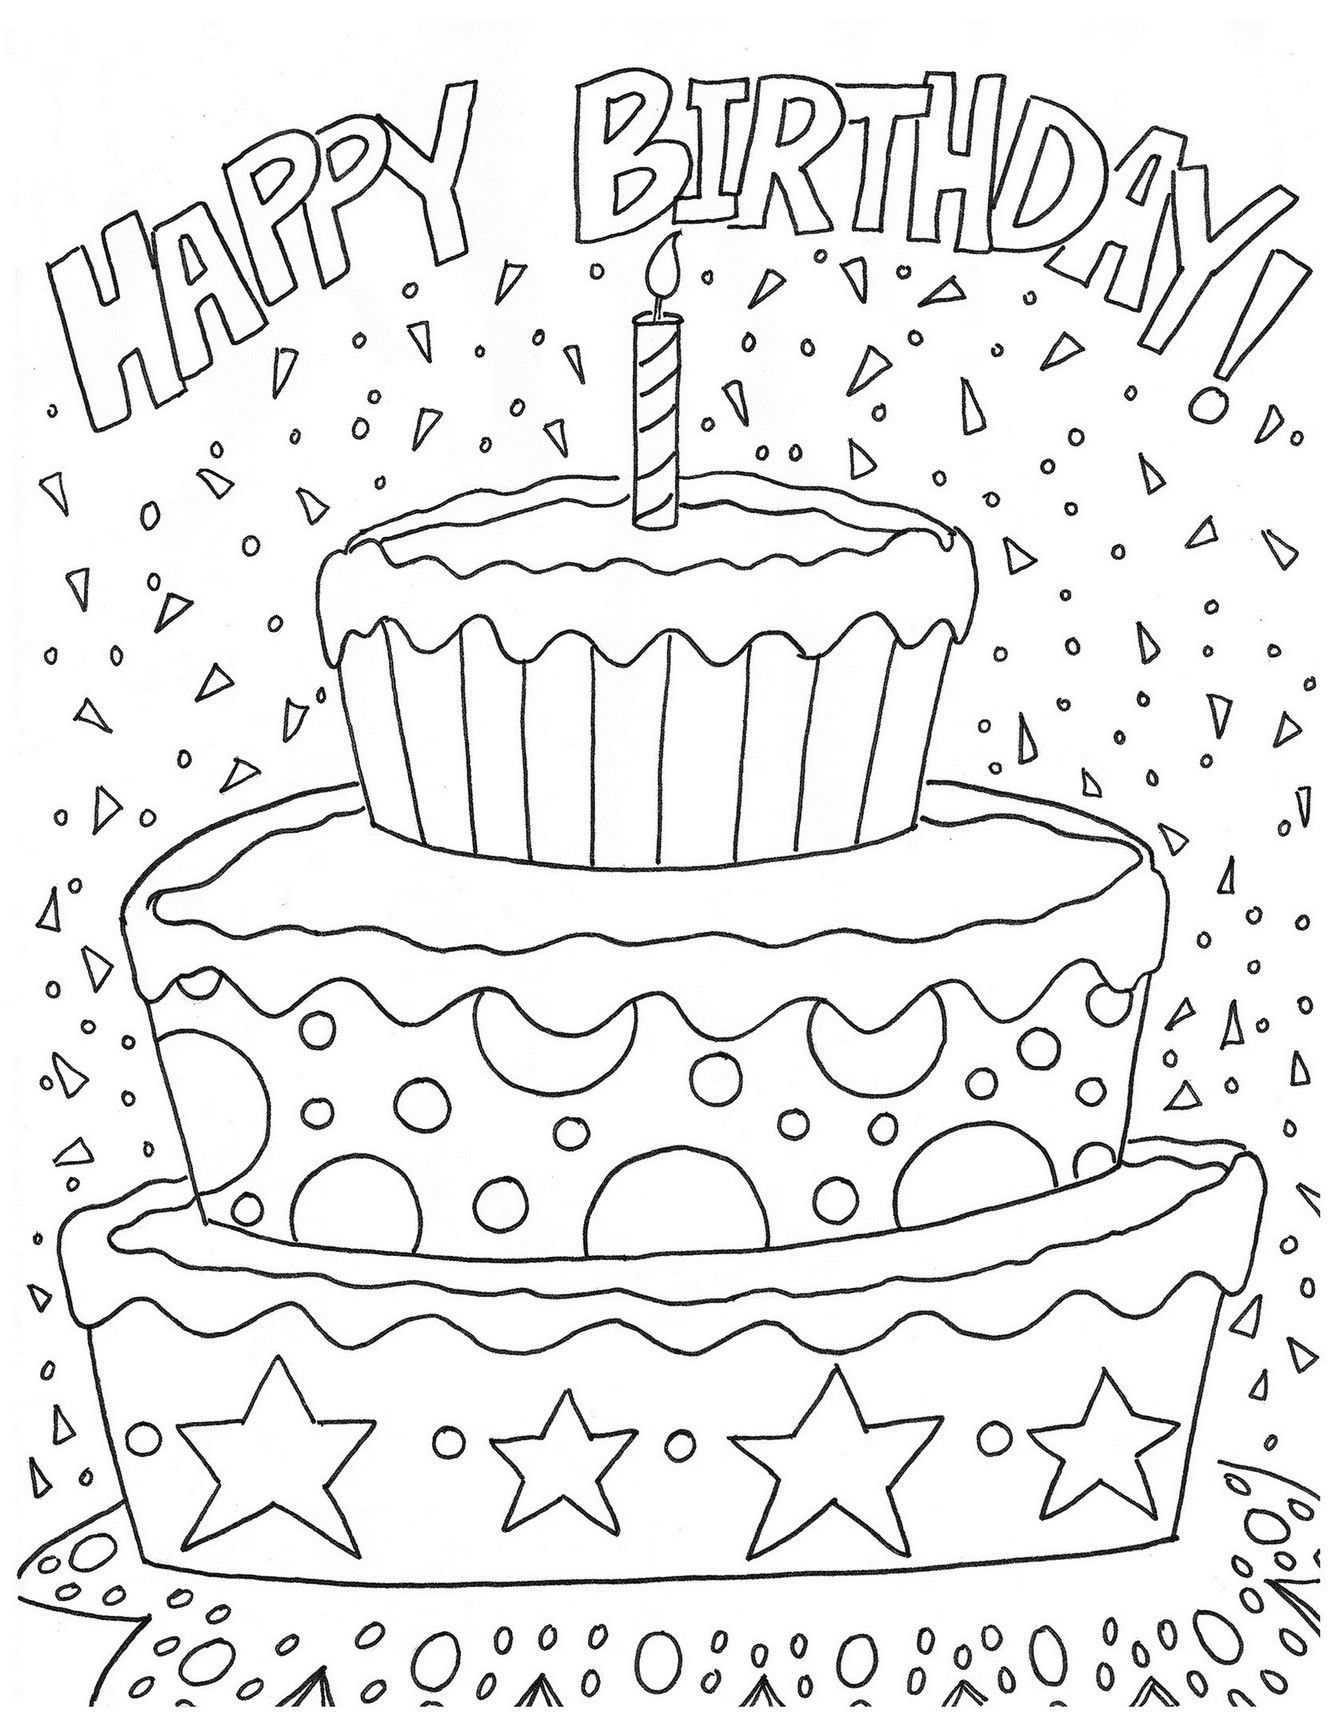 Coloring Page Happy Birthday Printable Dengan Gambar